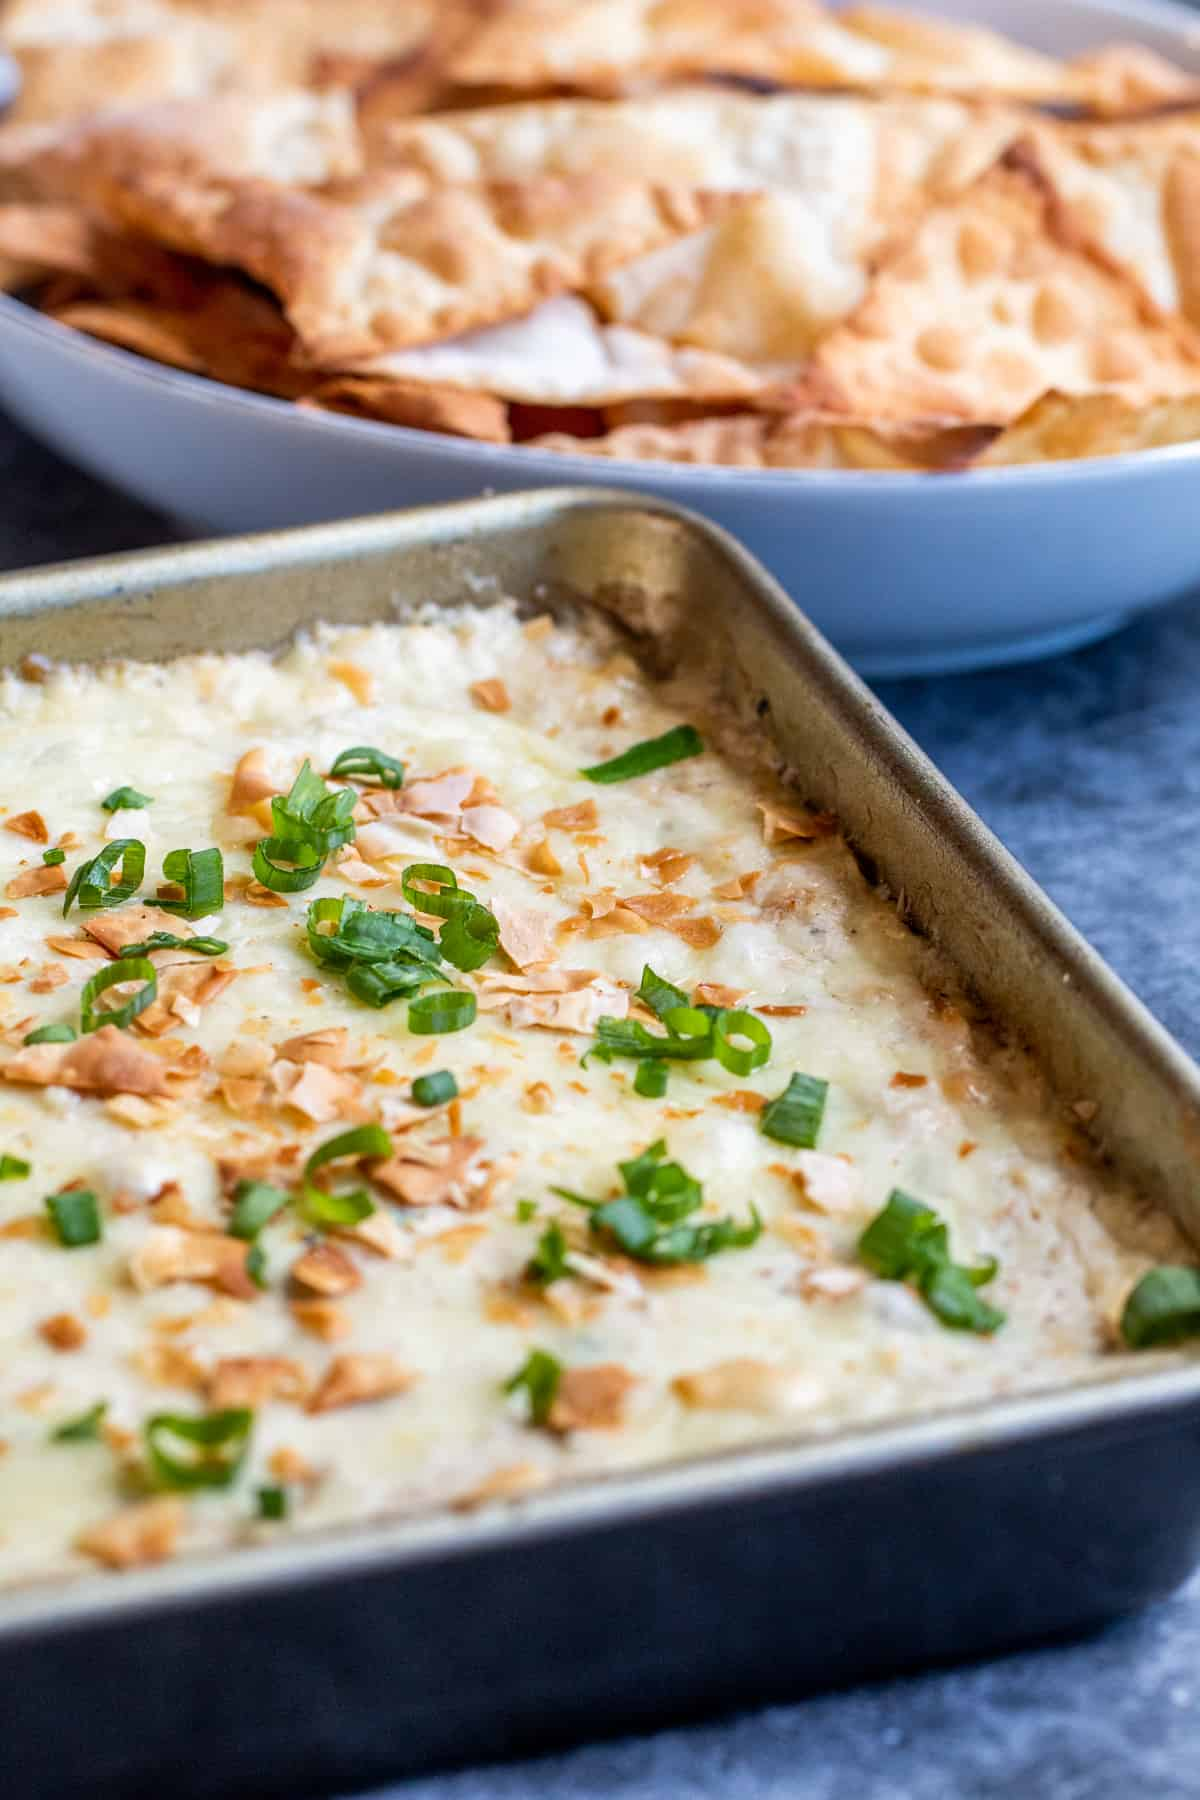 Crab dip in a baking pan on a blue counter with chips in the background.